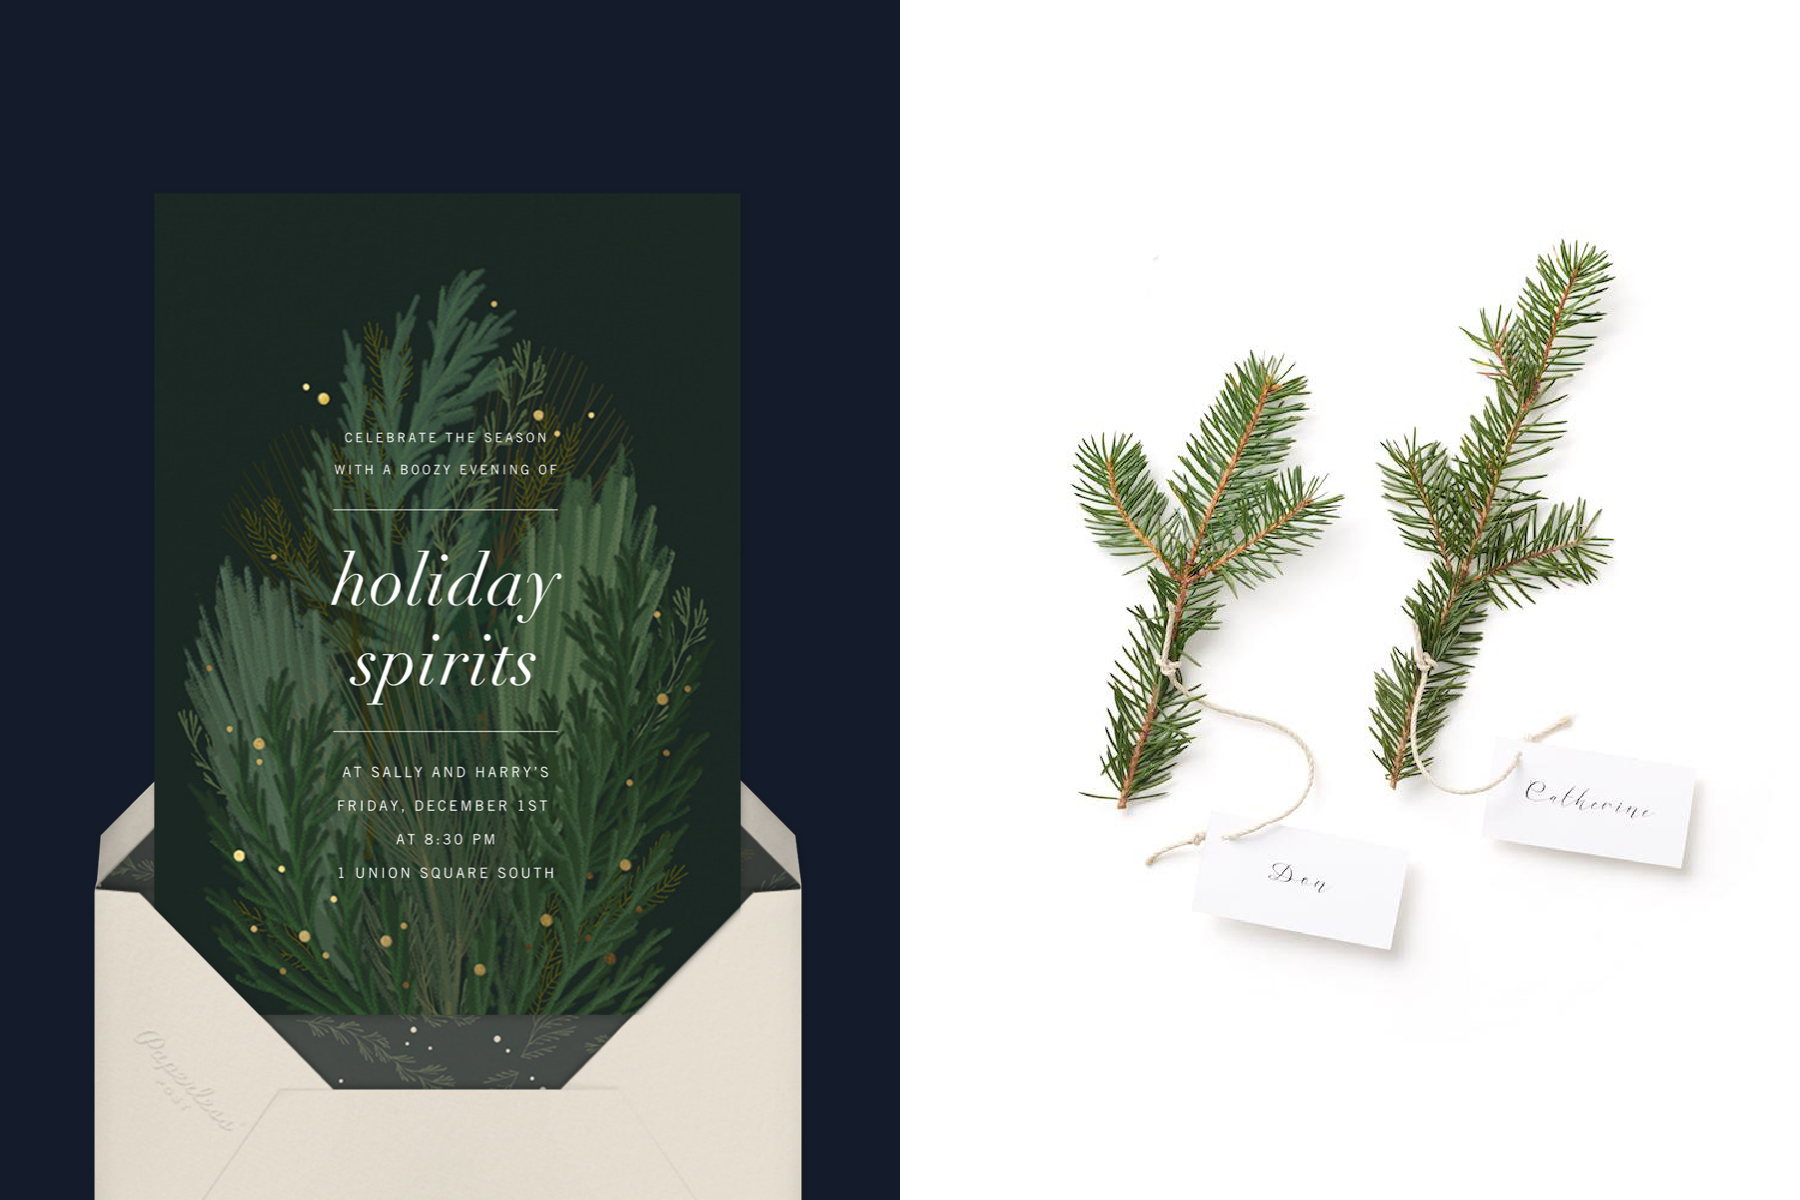 evergreen invitation and place cards for covid Christmas parties